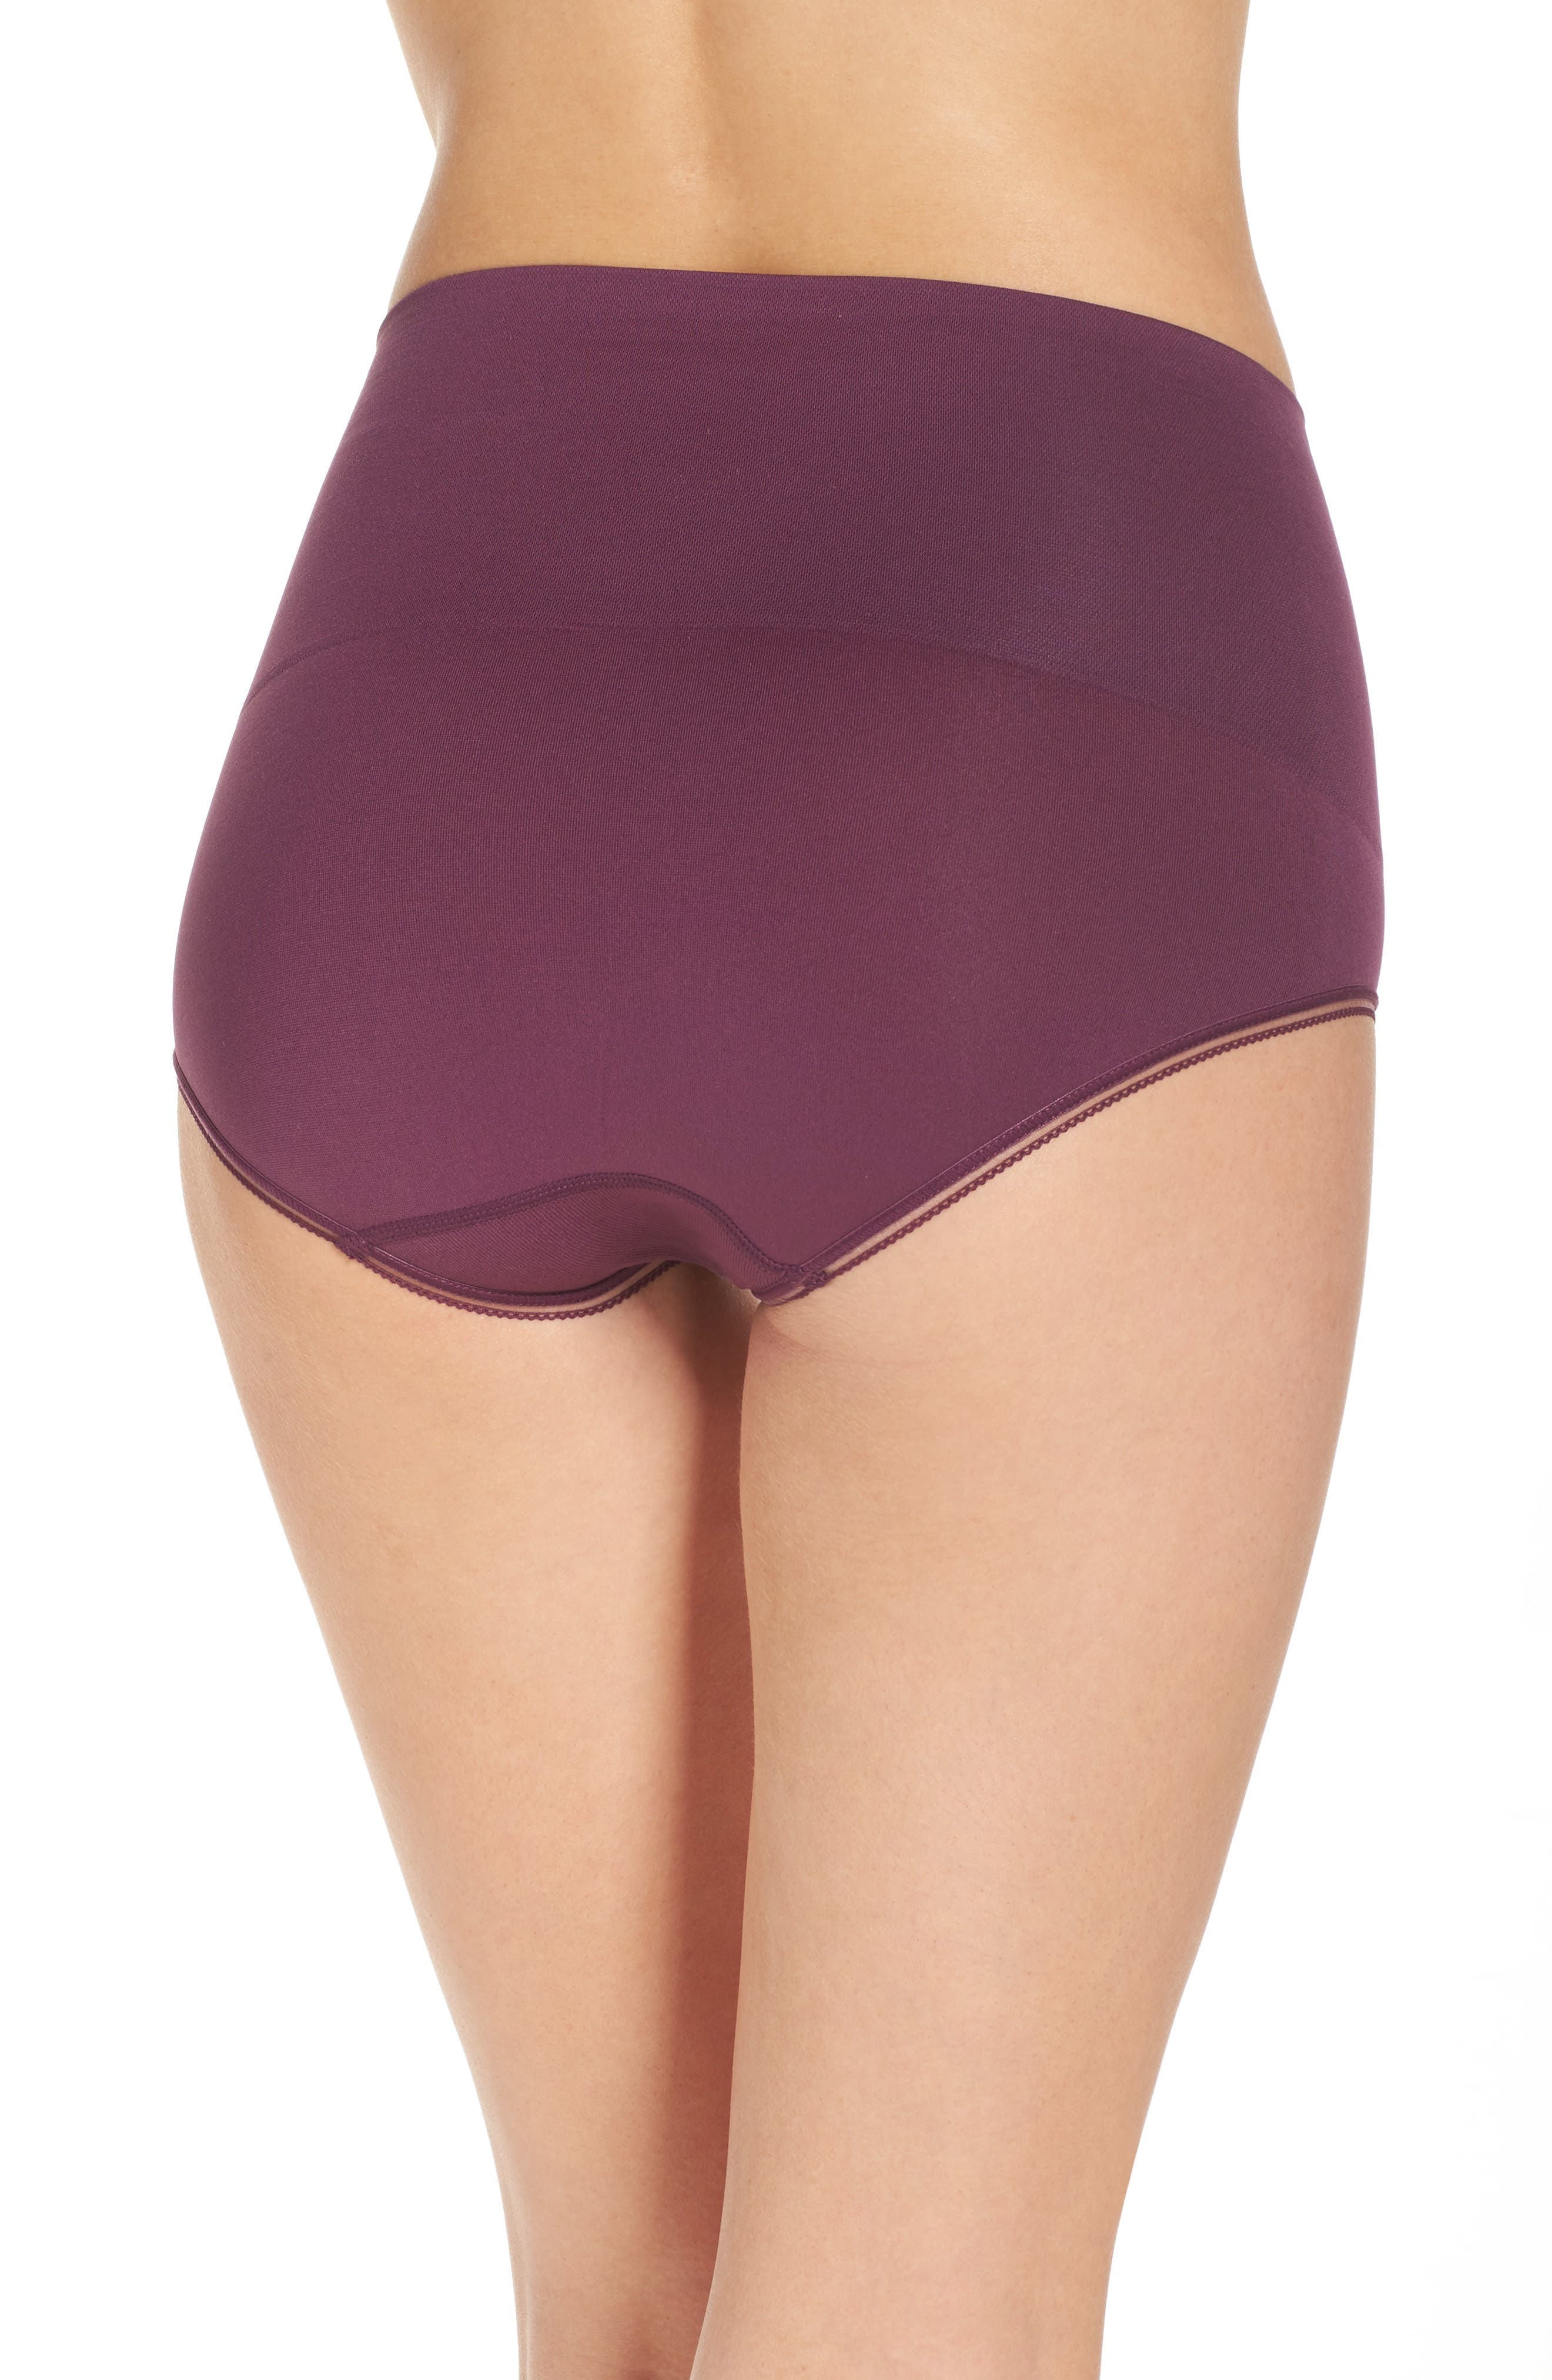 Alternate Image 2  - Yummie Ultralight Seamless Shaping Briefs (2 for $30)